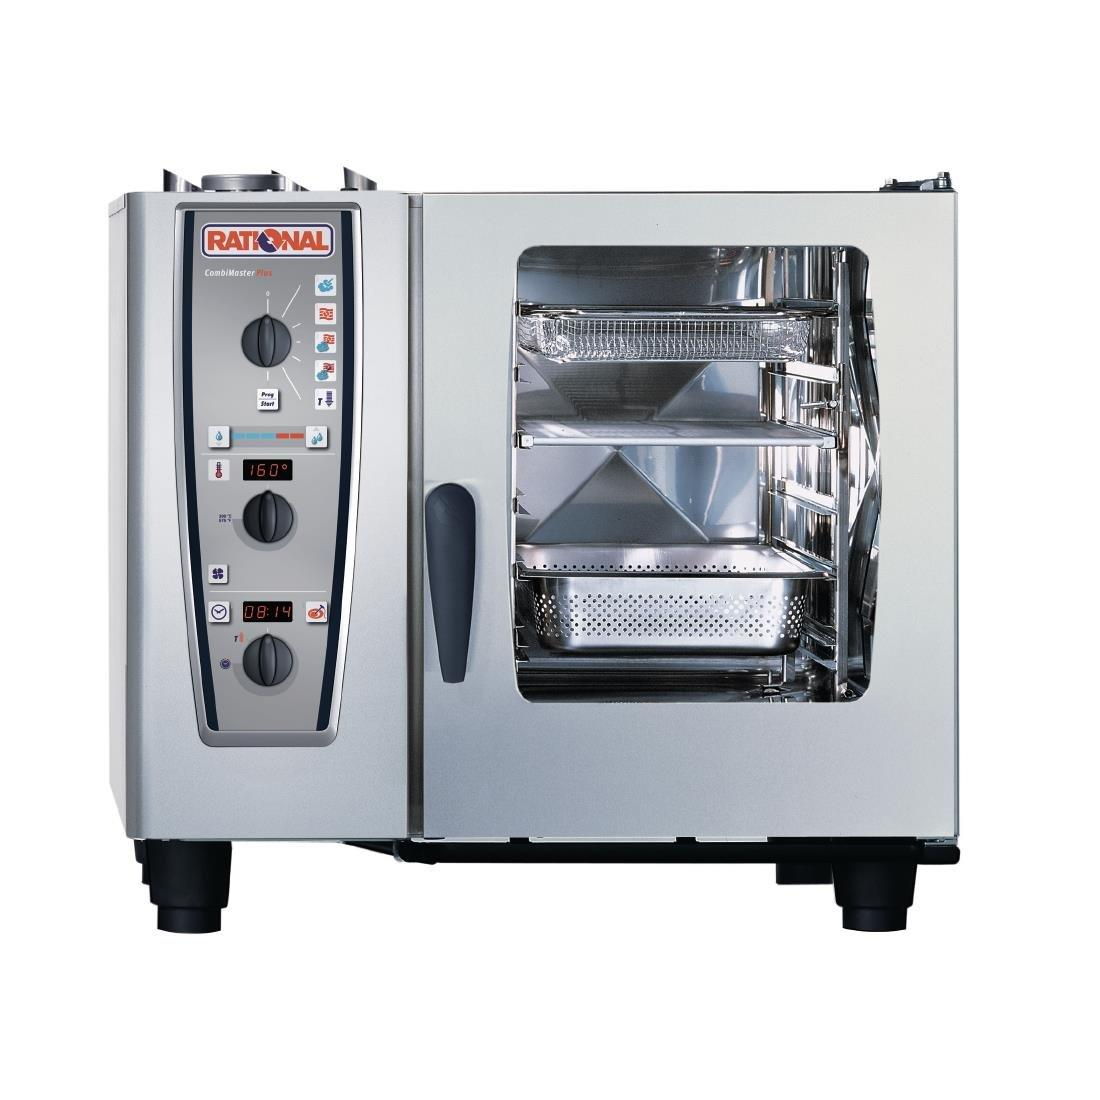 GJ080 - Rational Combimaster Plus 61 Electric (Direct)